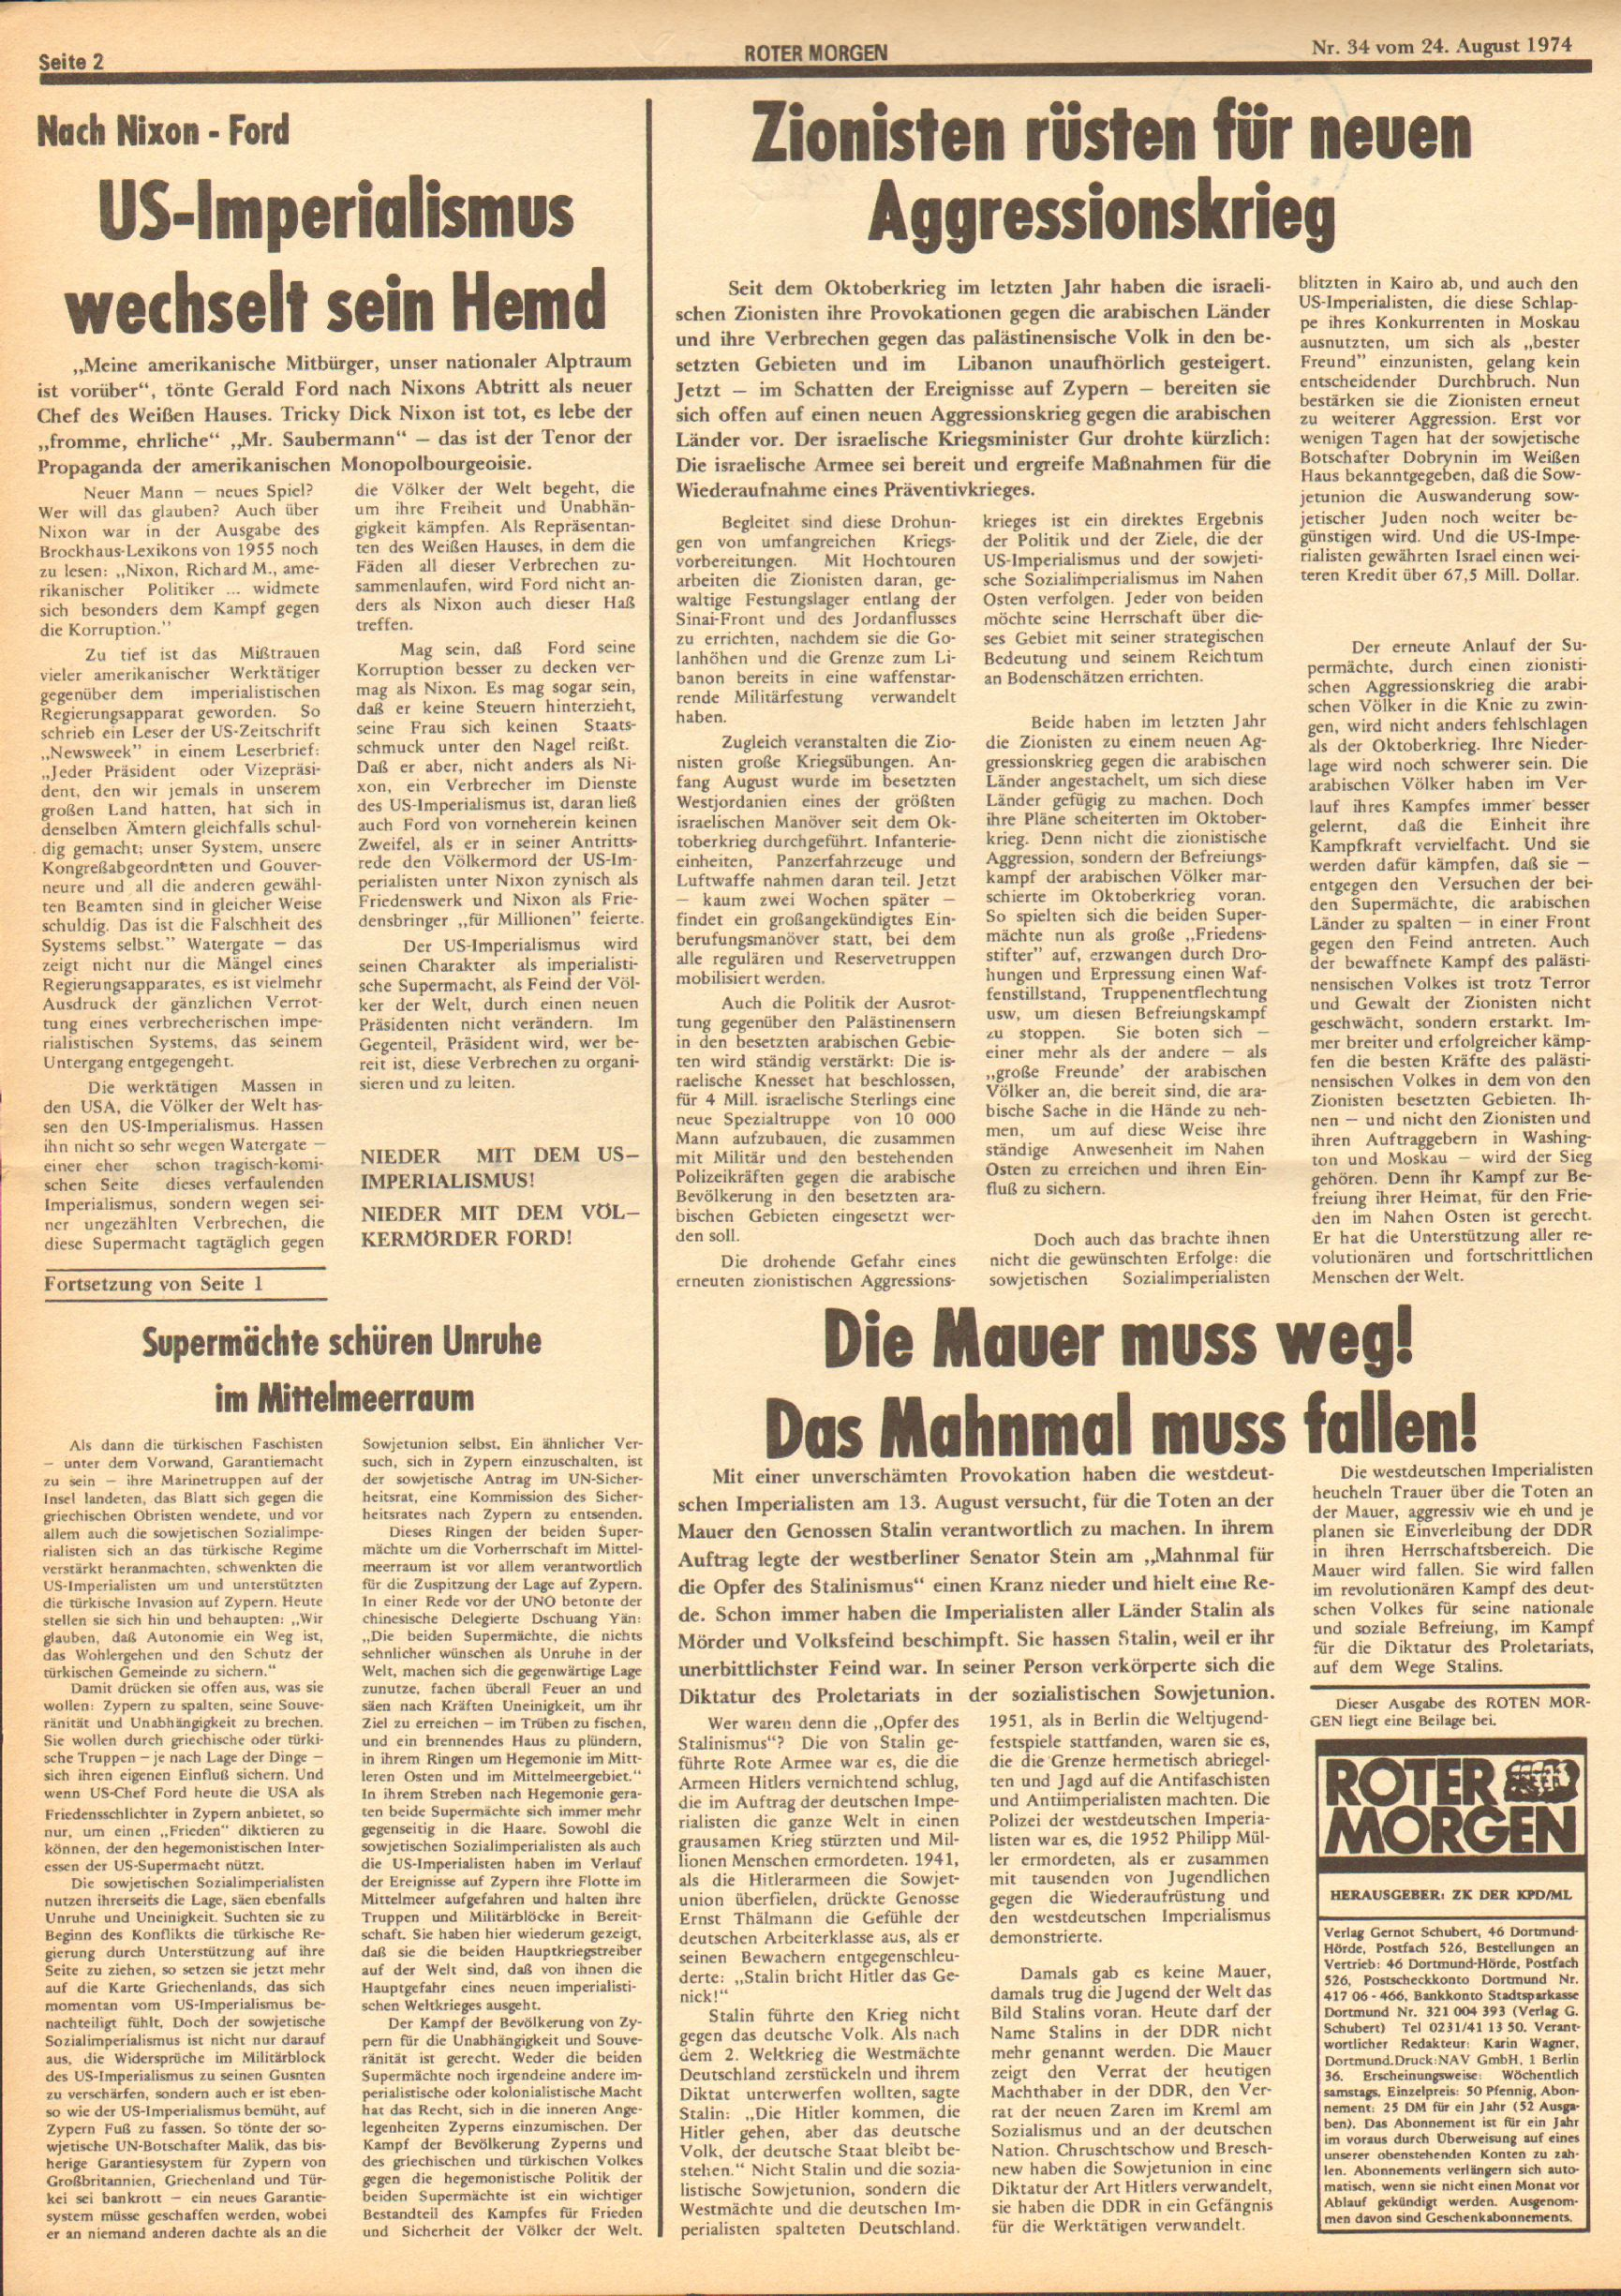 Roter Morgen, 8. Jg., 24. August 1974, Nr. 34, Seite 2